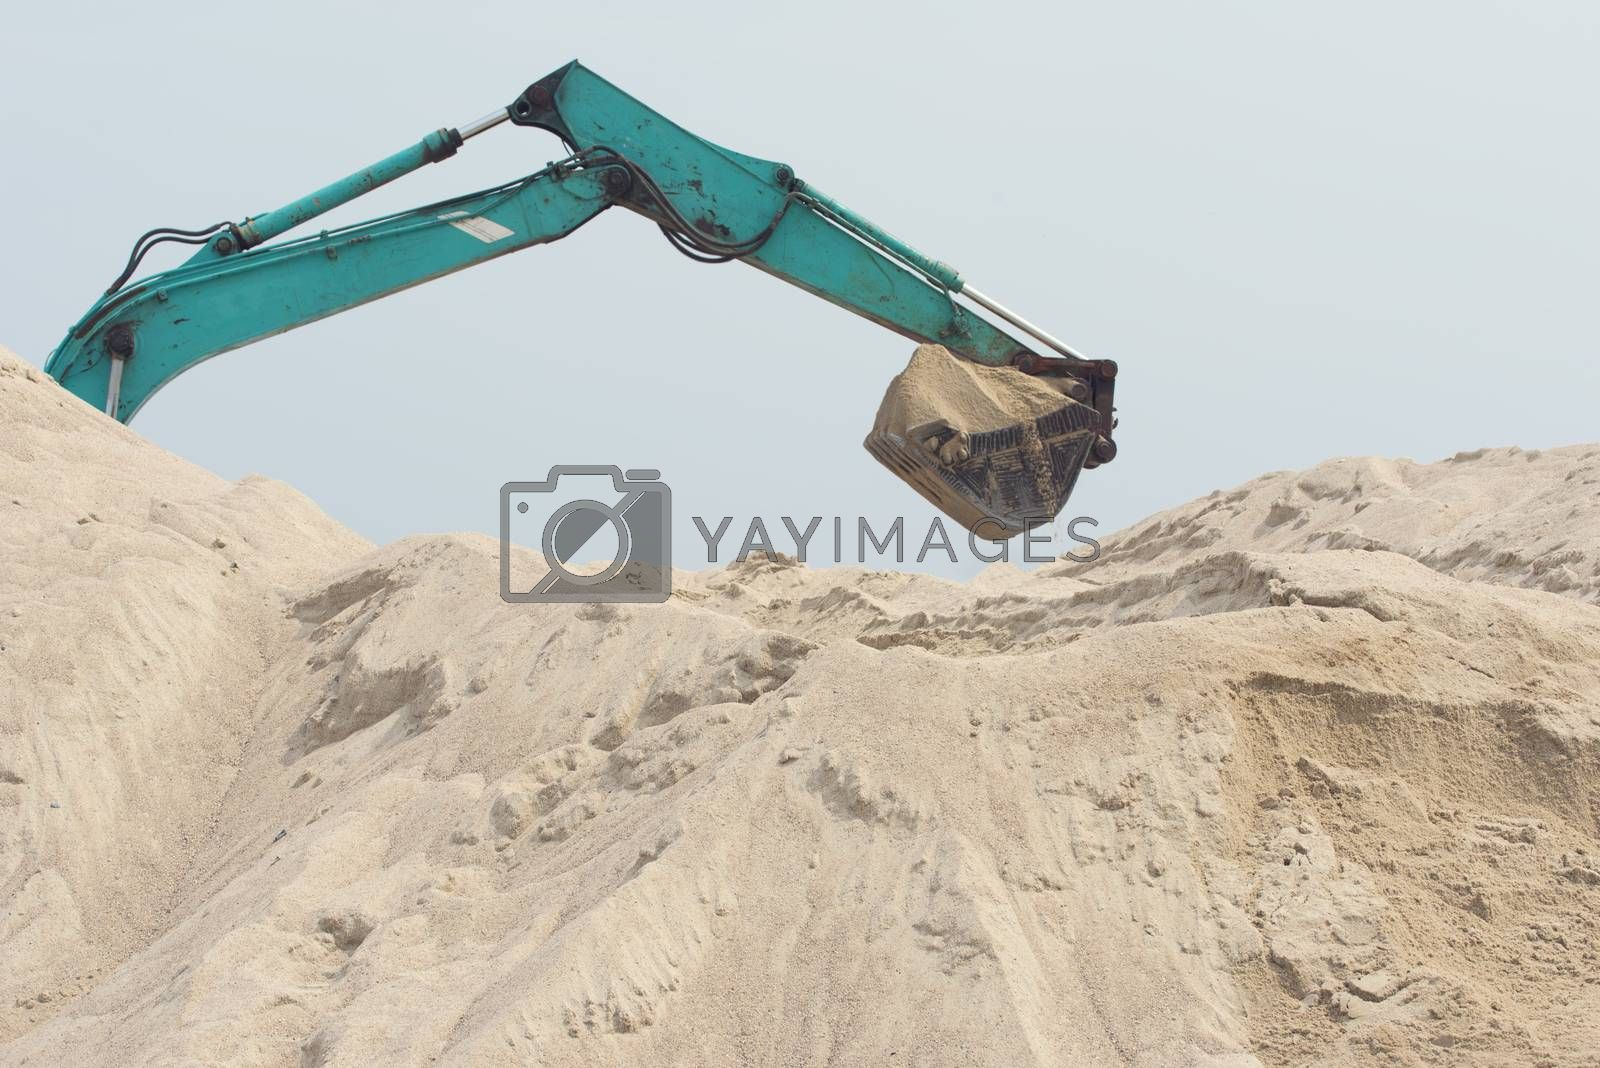 Excavator is digging sand. Construction excavator on the construction site in a quarry